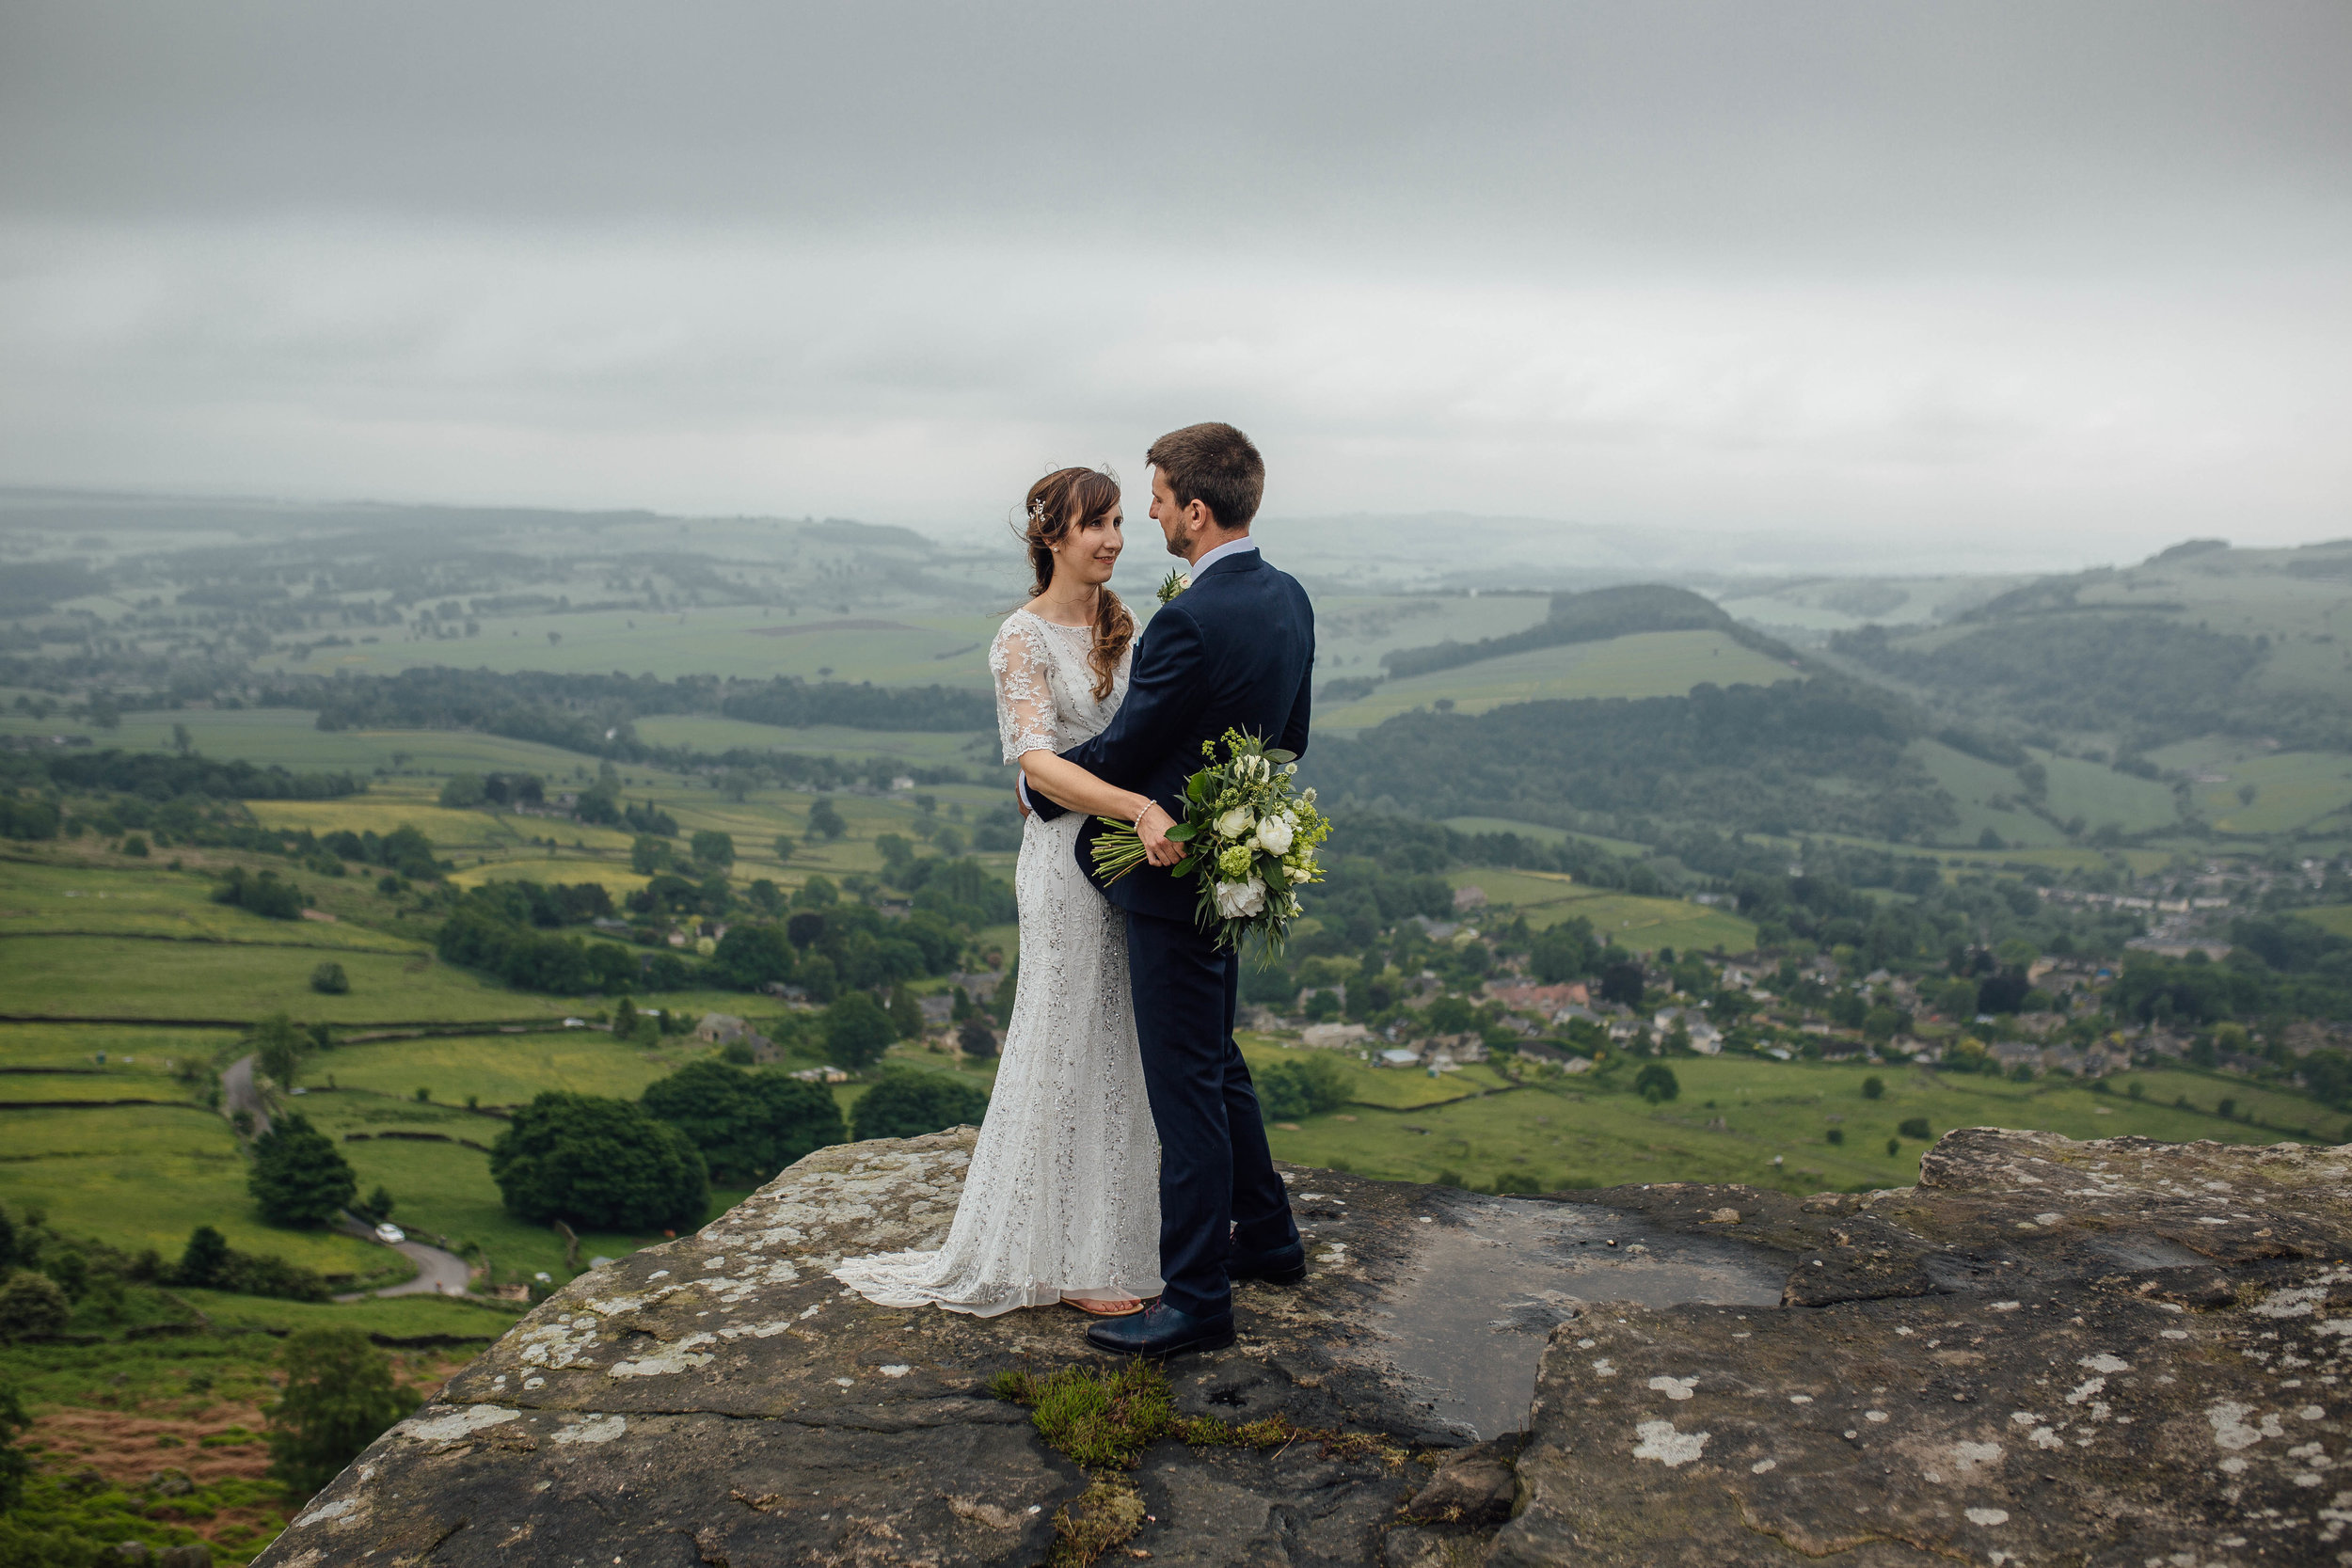 Peak District Wedding Venue Mount Cook Adventure Centre